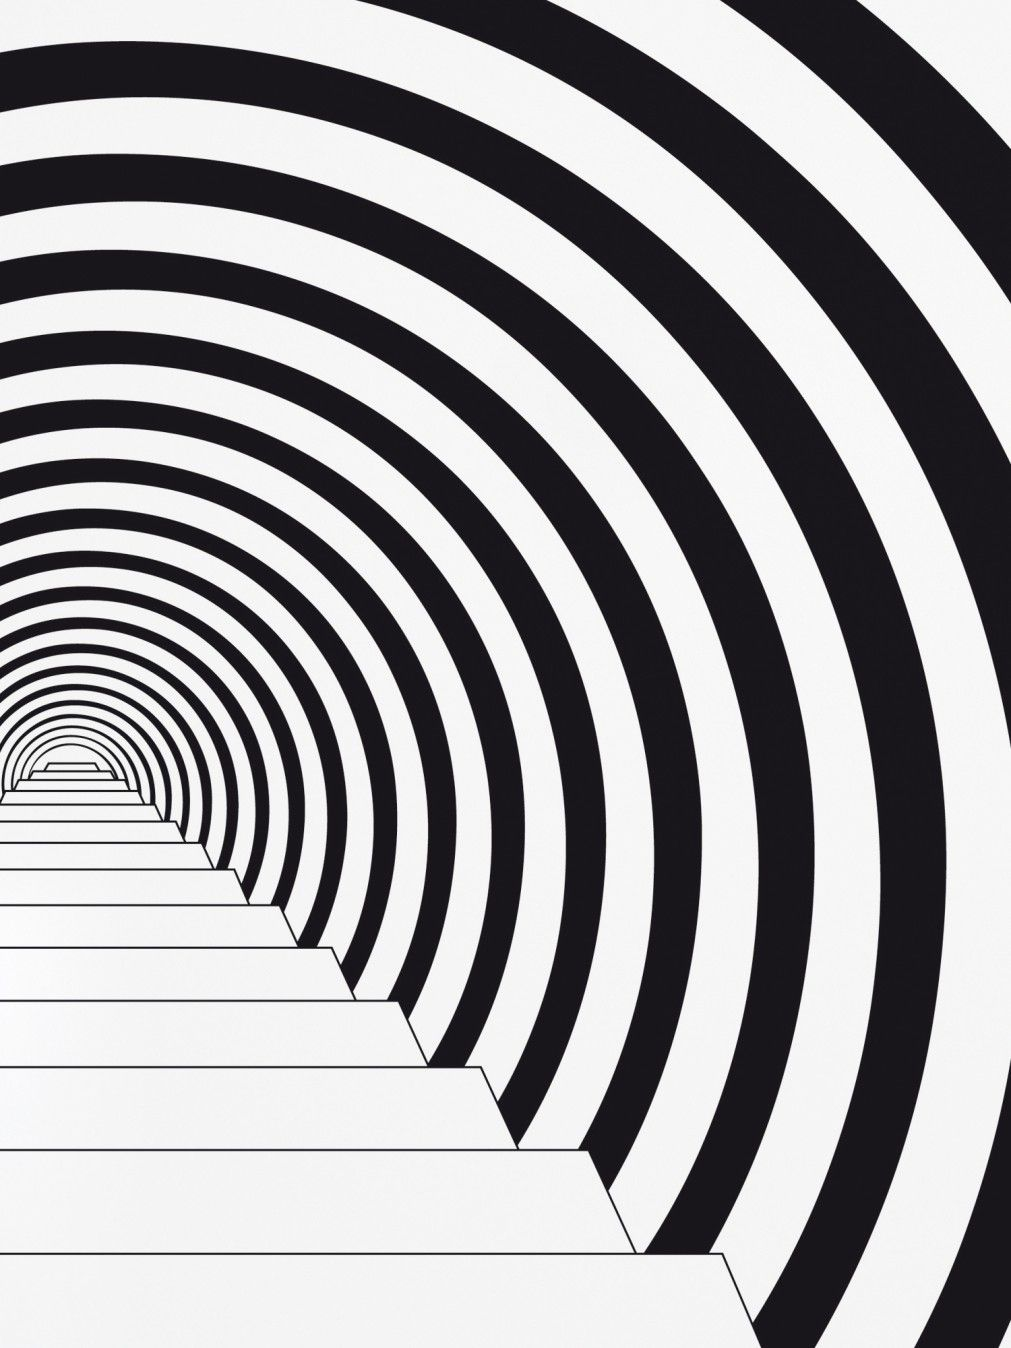 Optical Illusions Art By Ray Forsqueakydog On Sketch Ideas